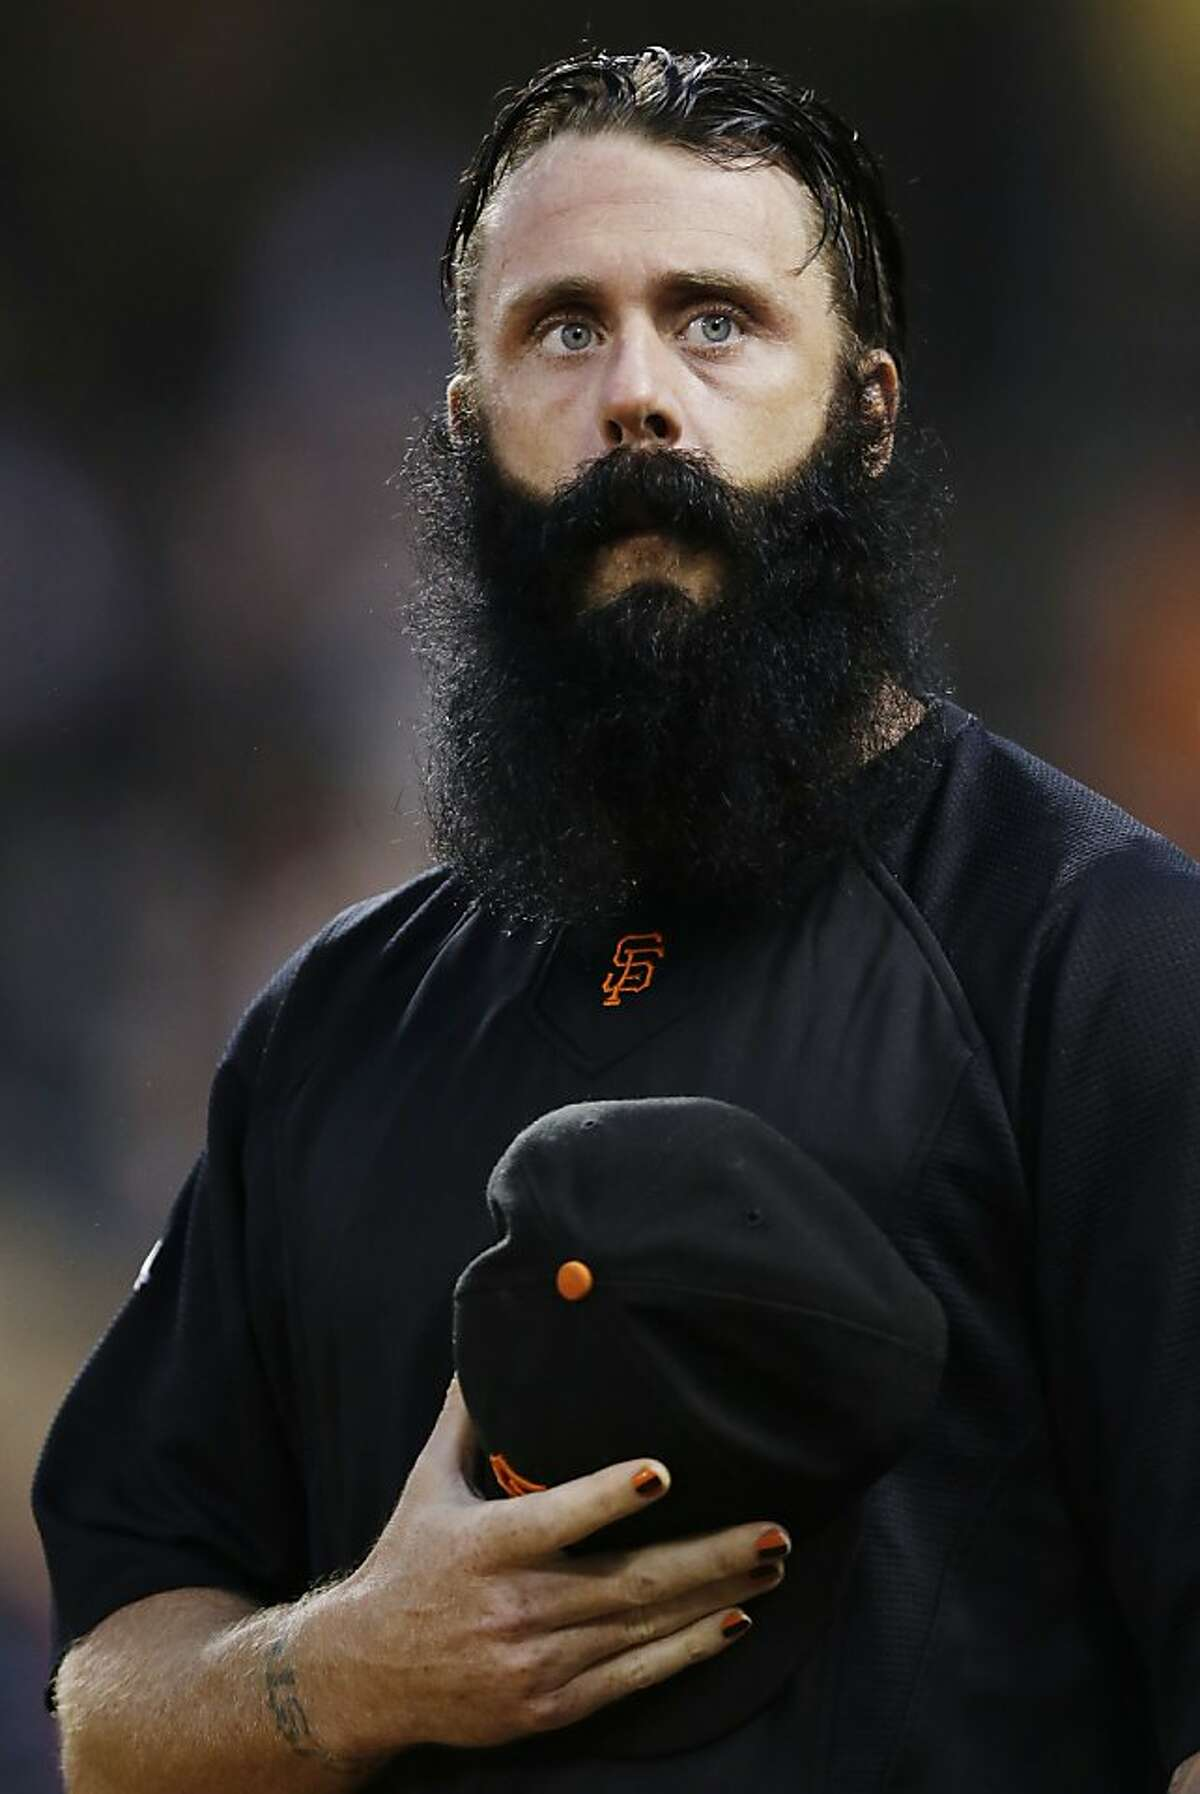 FILE - In this Sept. 25, 2012, file photo, San Francisco Giants relief pitcher Brian Wilson looks on from the dugout during a baseball game against the Arizona Diamondbacks in San Francisco. Wilson is scheduled to throw Oct. 19 for the first time since Tommy John surgery, and the always-confident closer insists he will be full strength by next year.